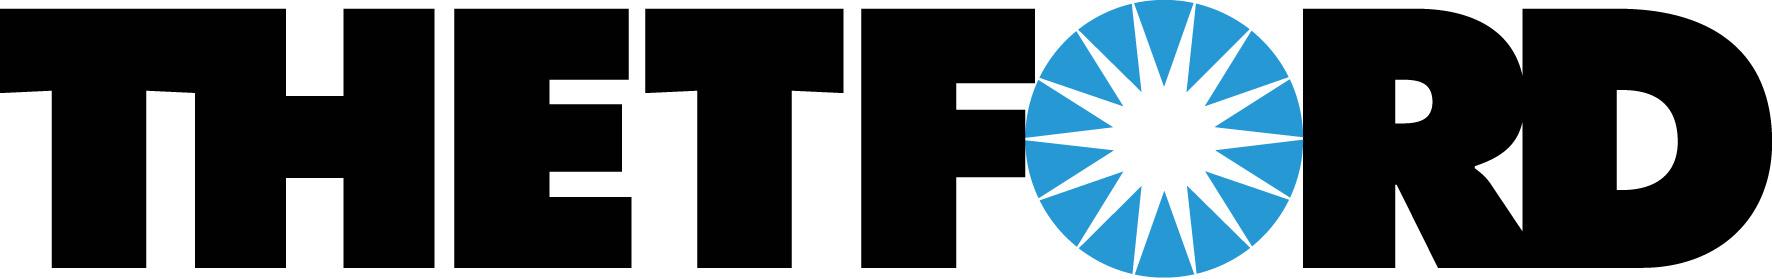 Thetford Corporation Logo